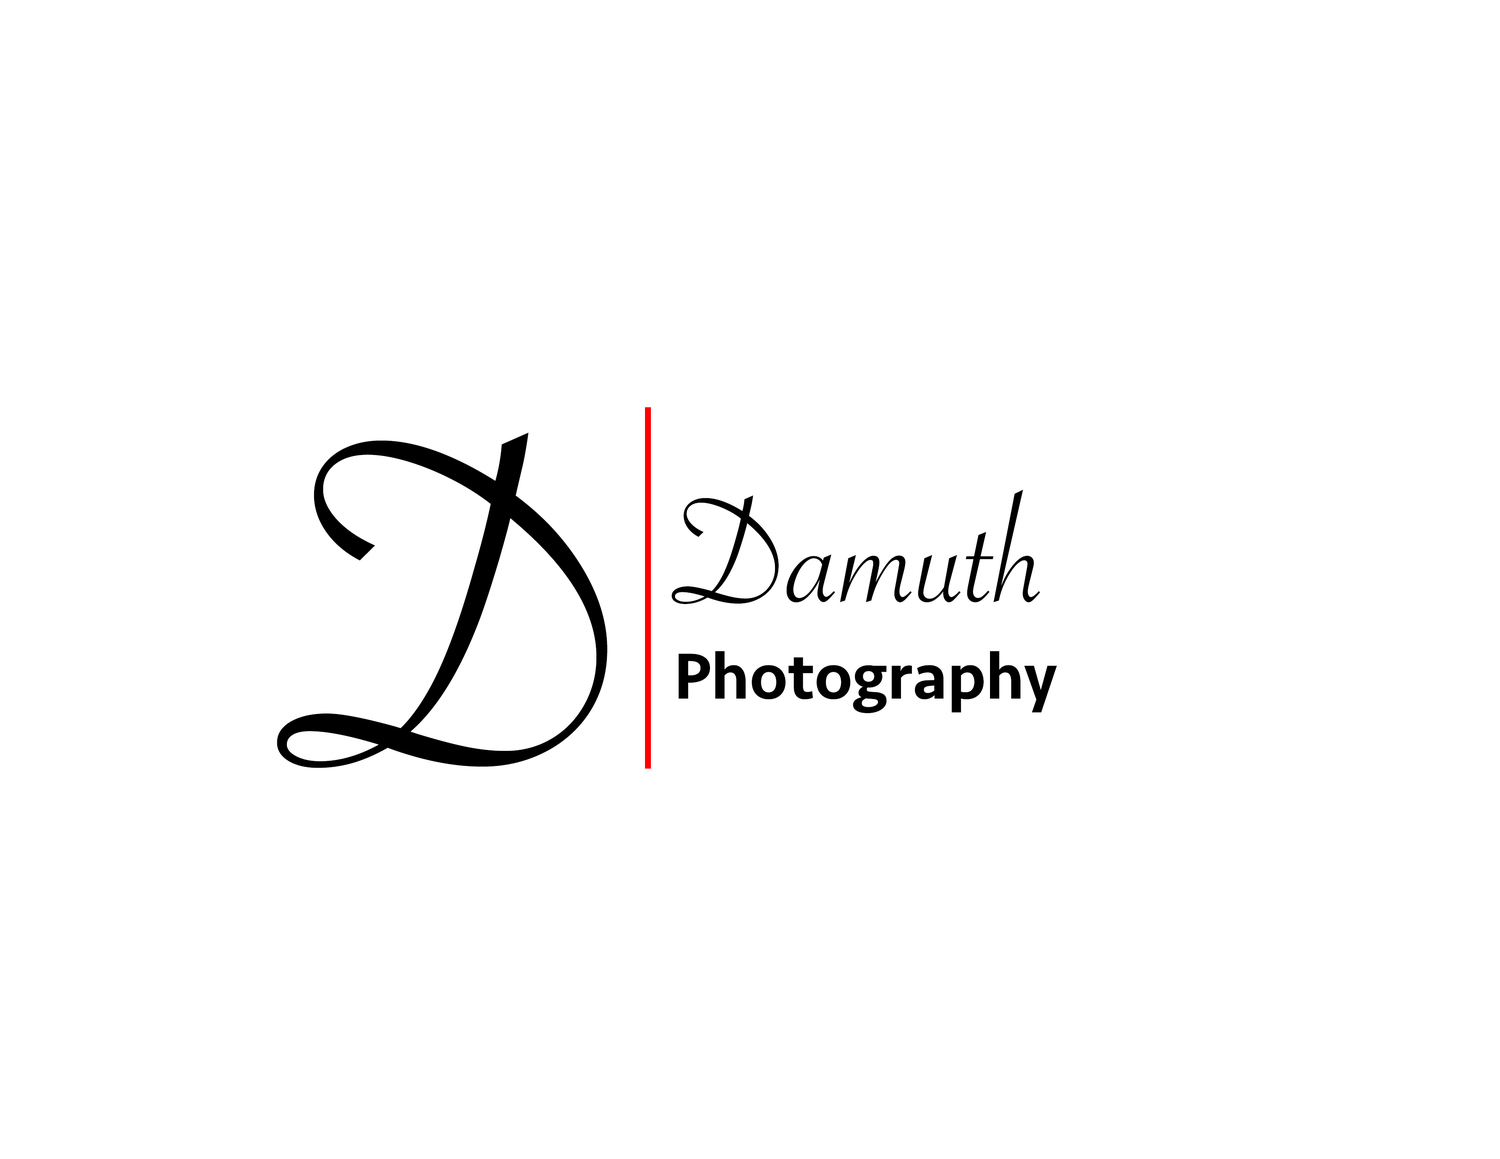 Damuth Photography